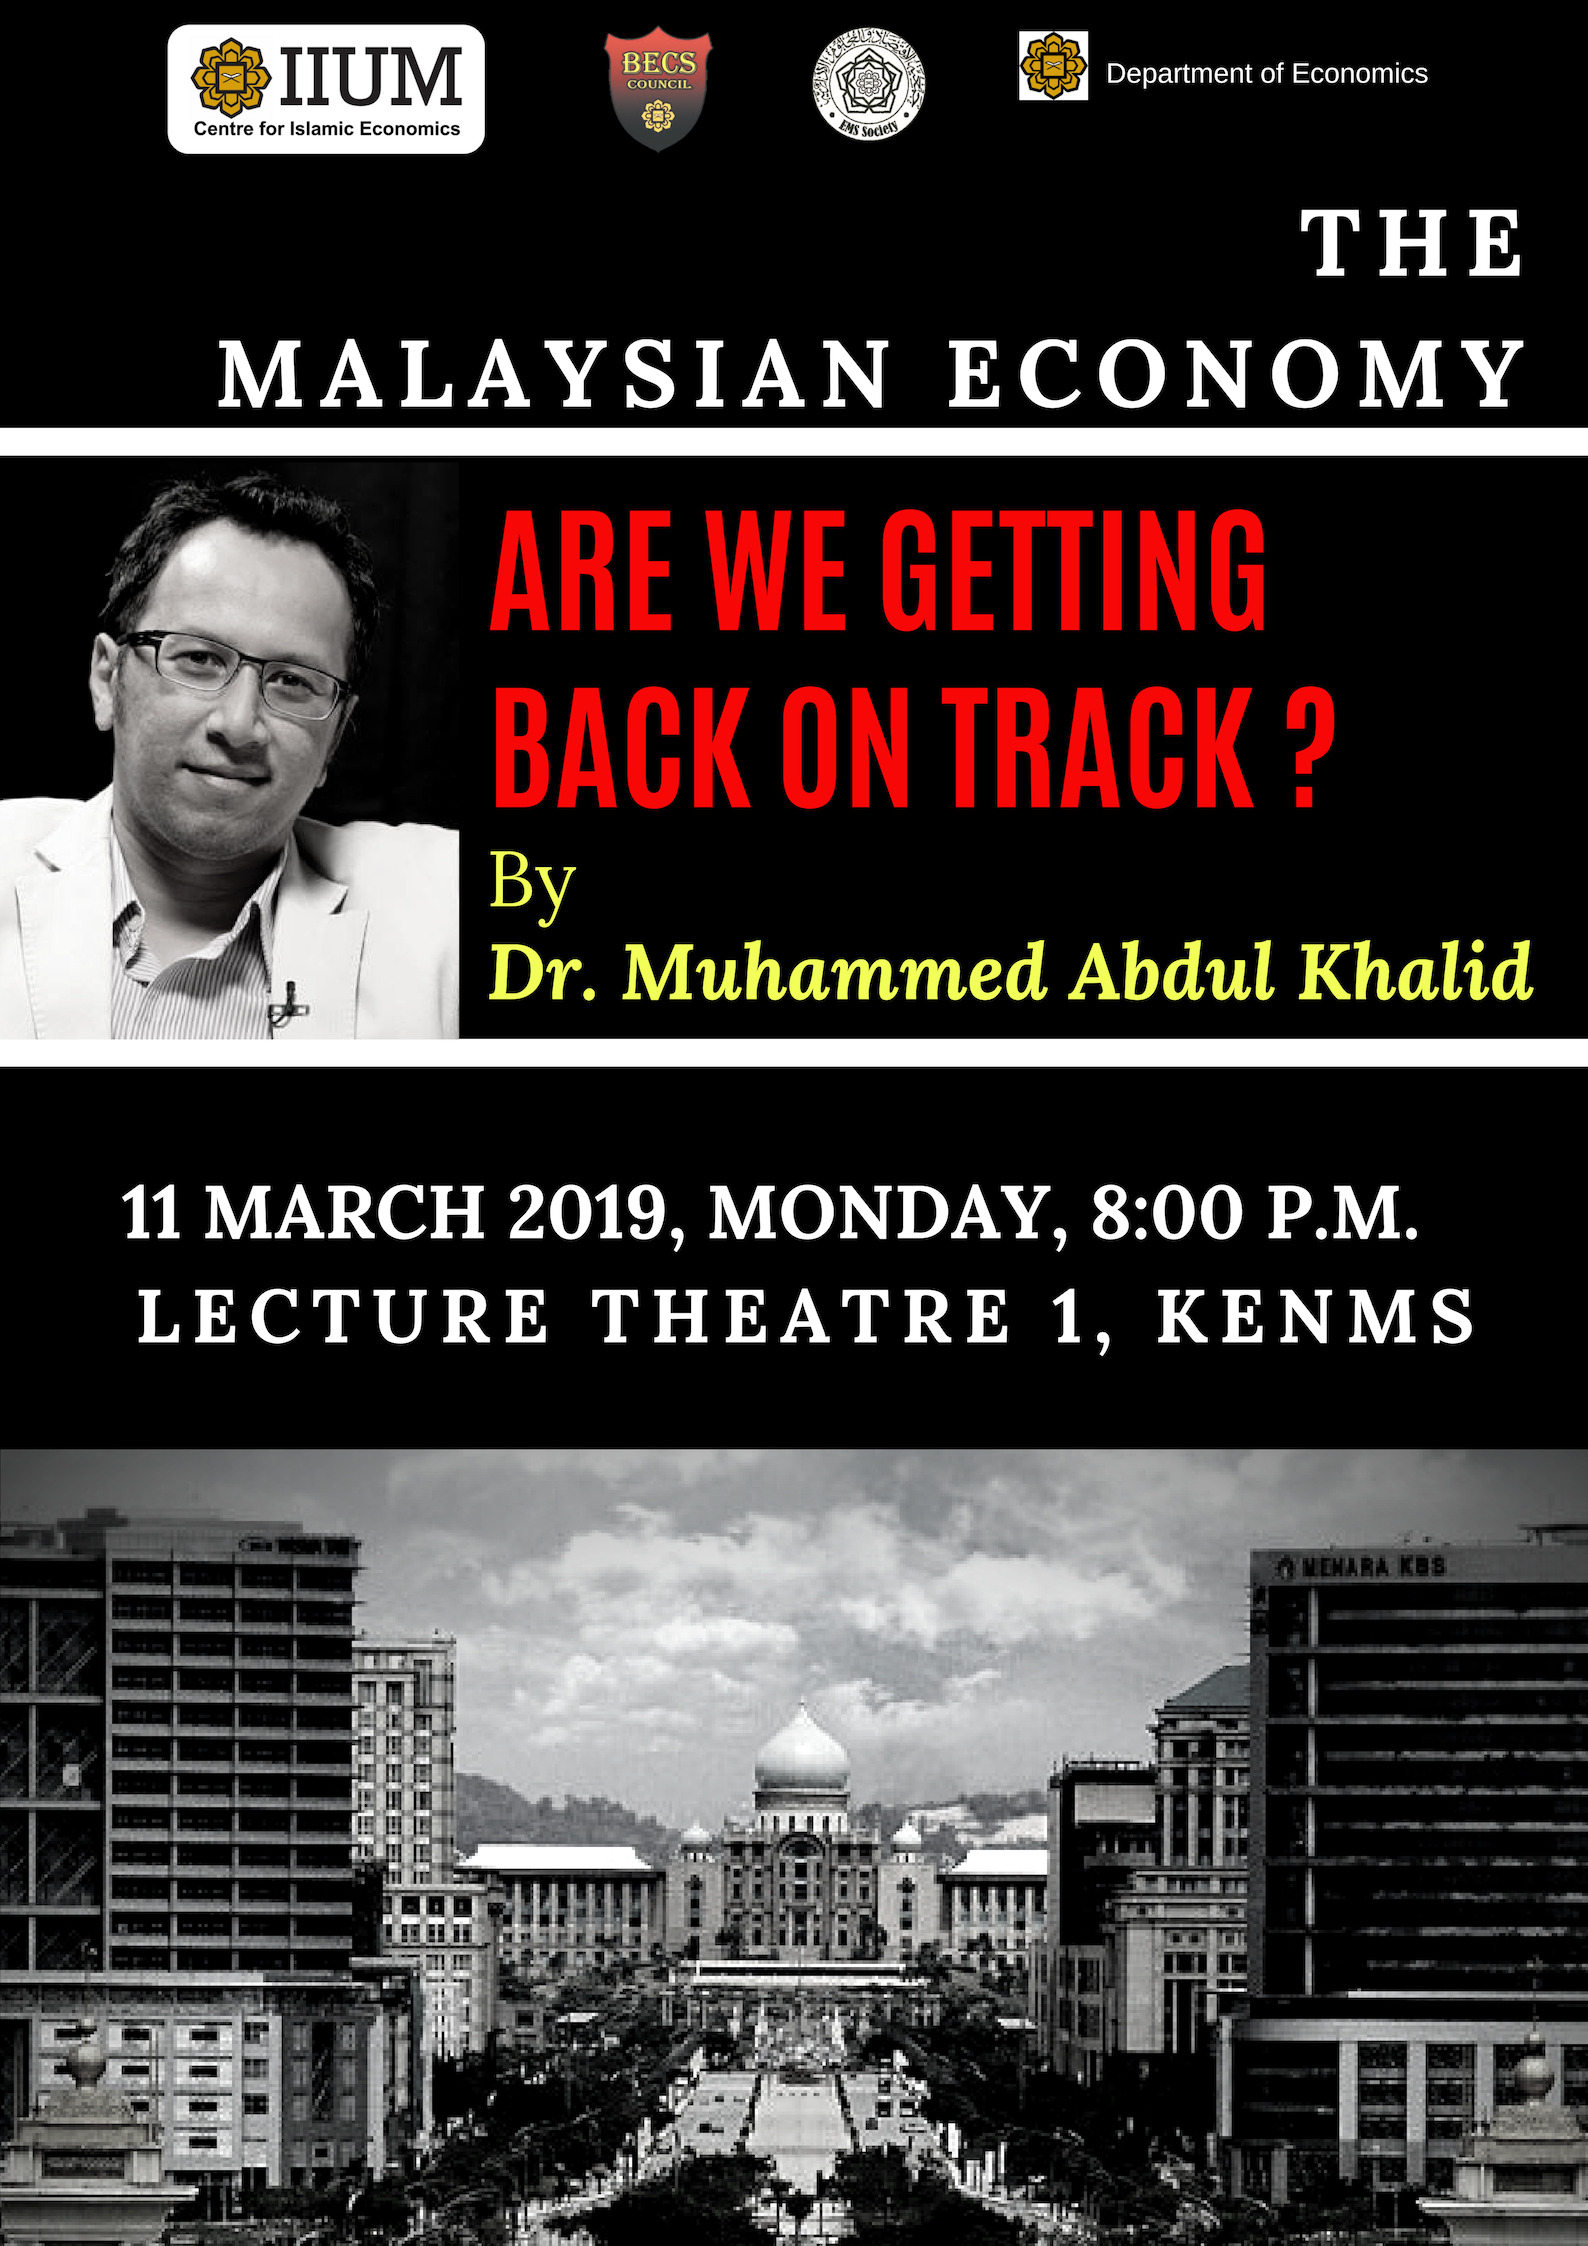 The Malaysian Economy - Are We Getting Back on Track ?